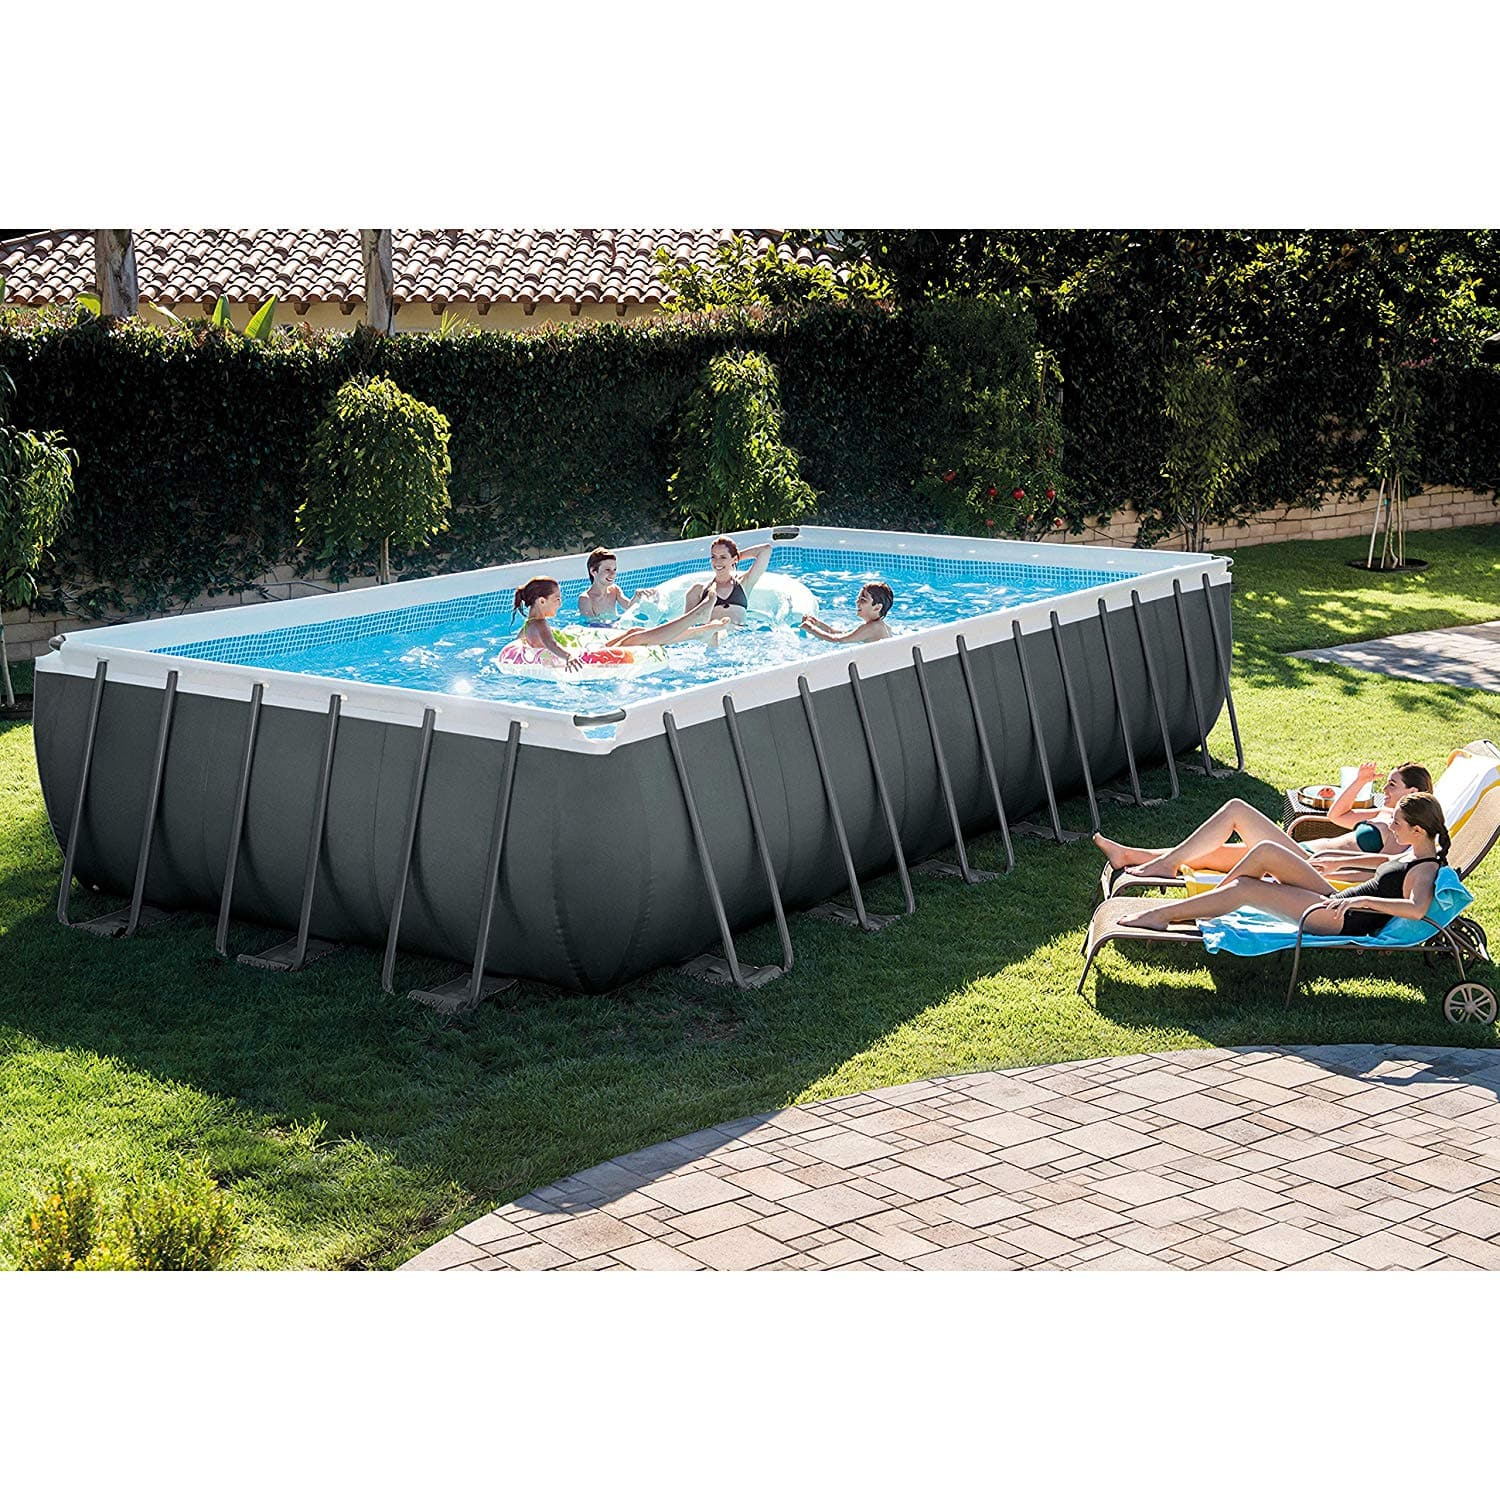 Pool Filterpumpe Bauhaus Pool Set Gallery Of Intex Ultra Frame Swimming Pool Setup From